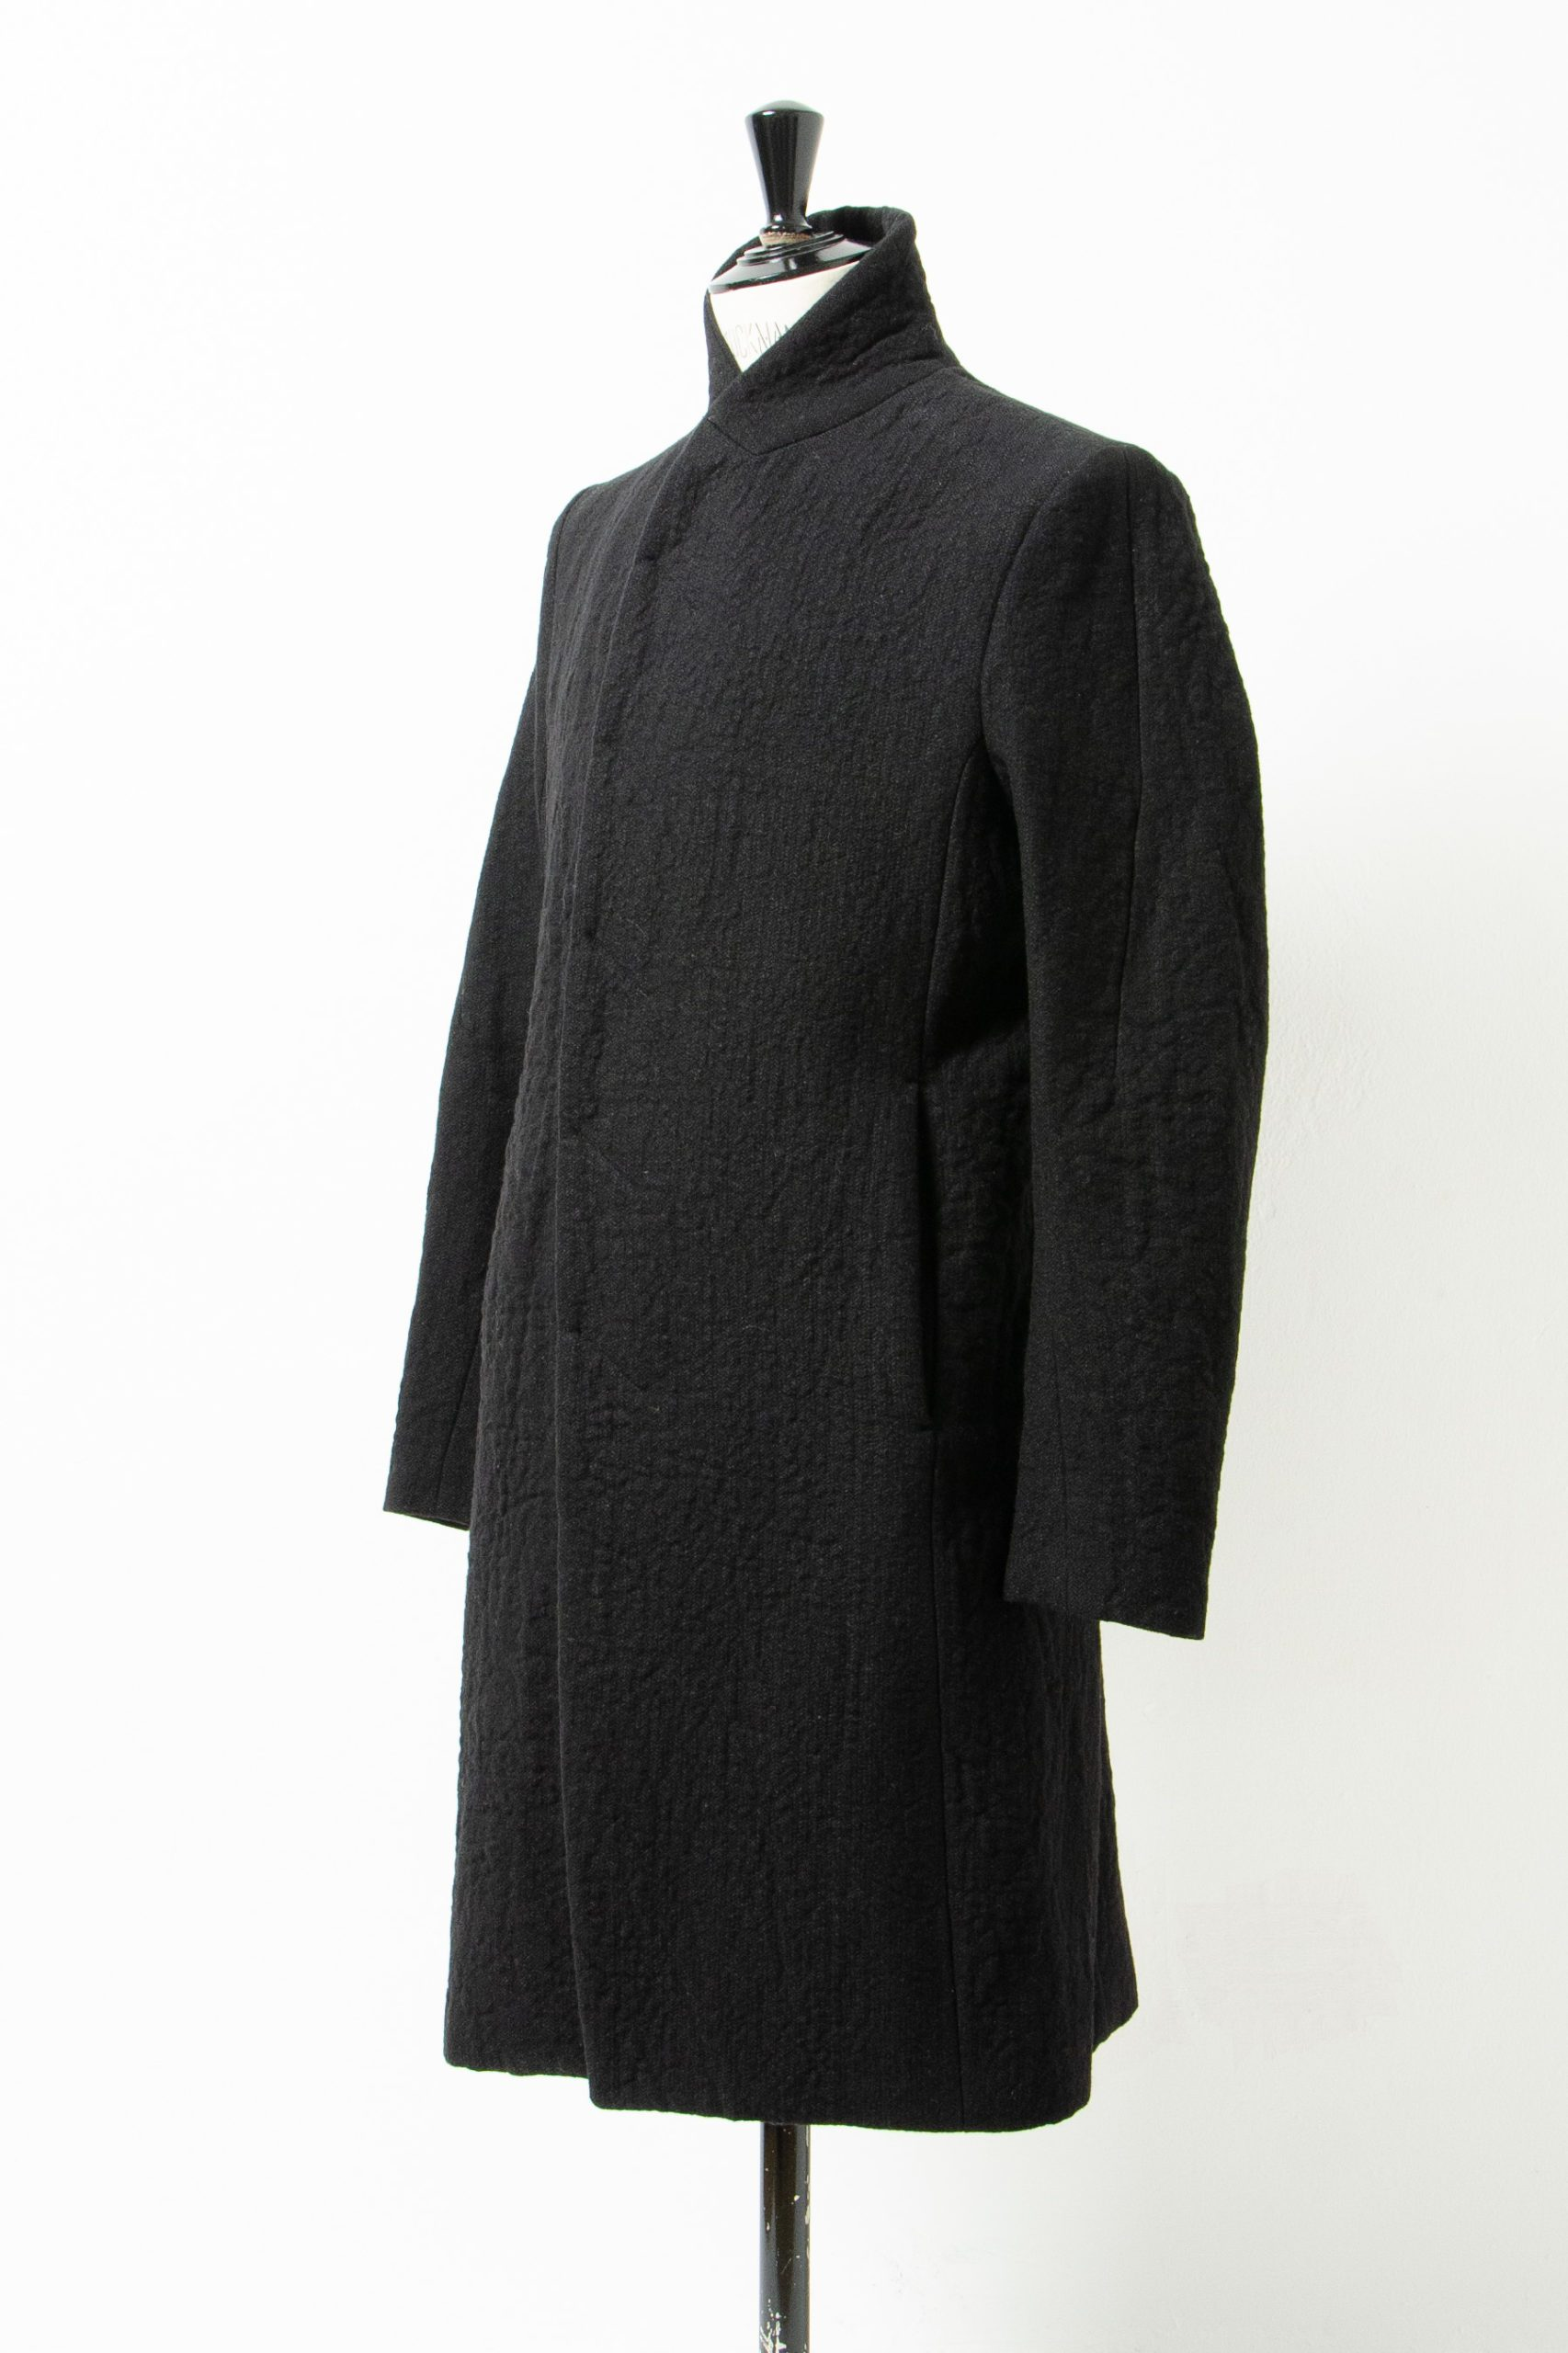 hannibal coat ratka raven 2